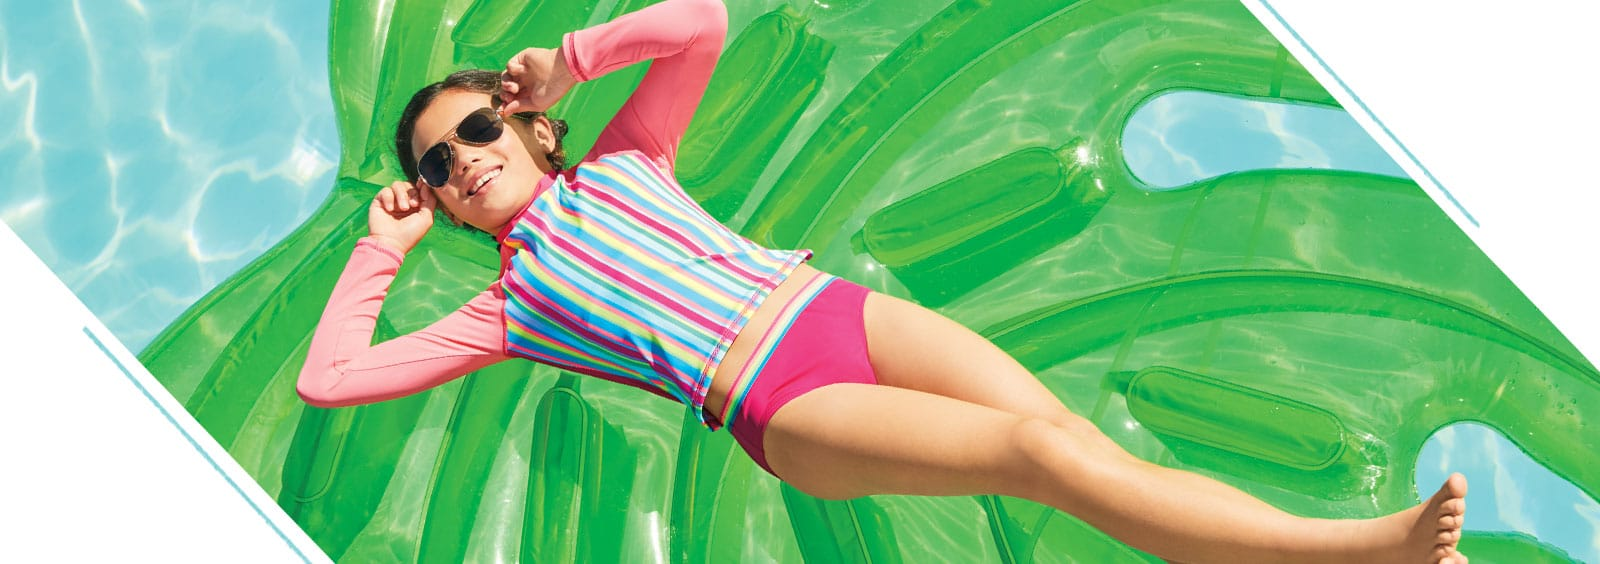 What to Bring to a Kids' Pool Party